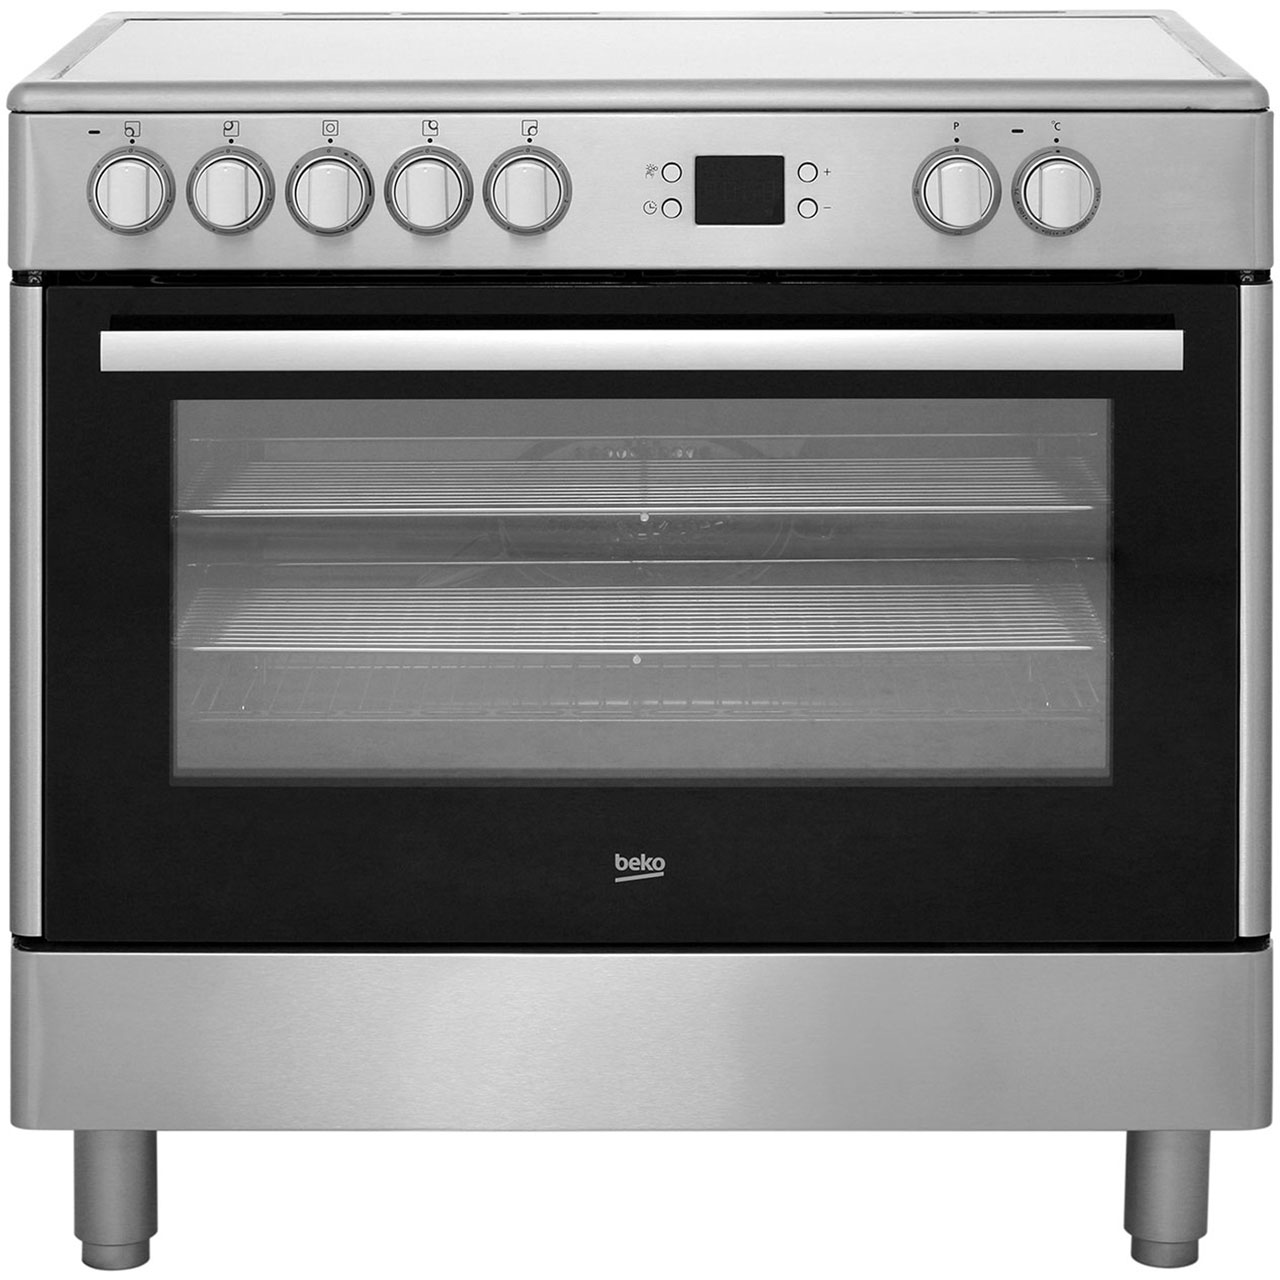 Small range oven cleaned by Ultra Clean Ovens from £95